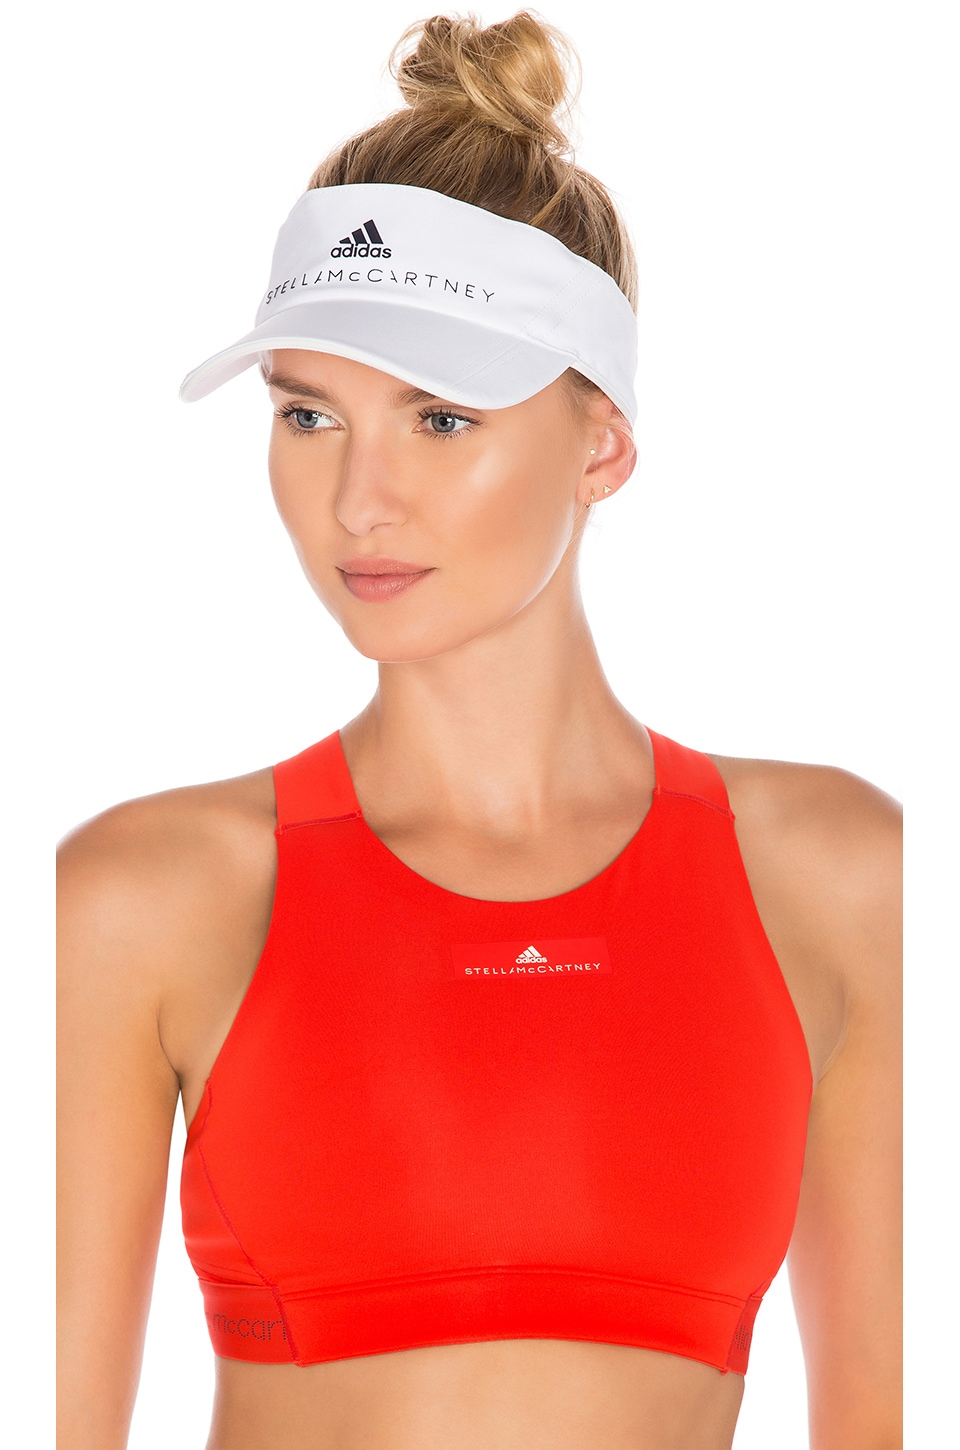 adidas by Stella McCartney Visor in White & Legend Blue